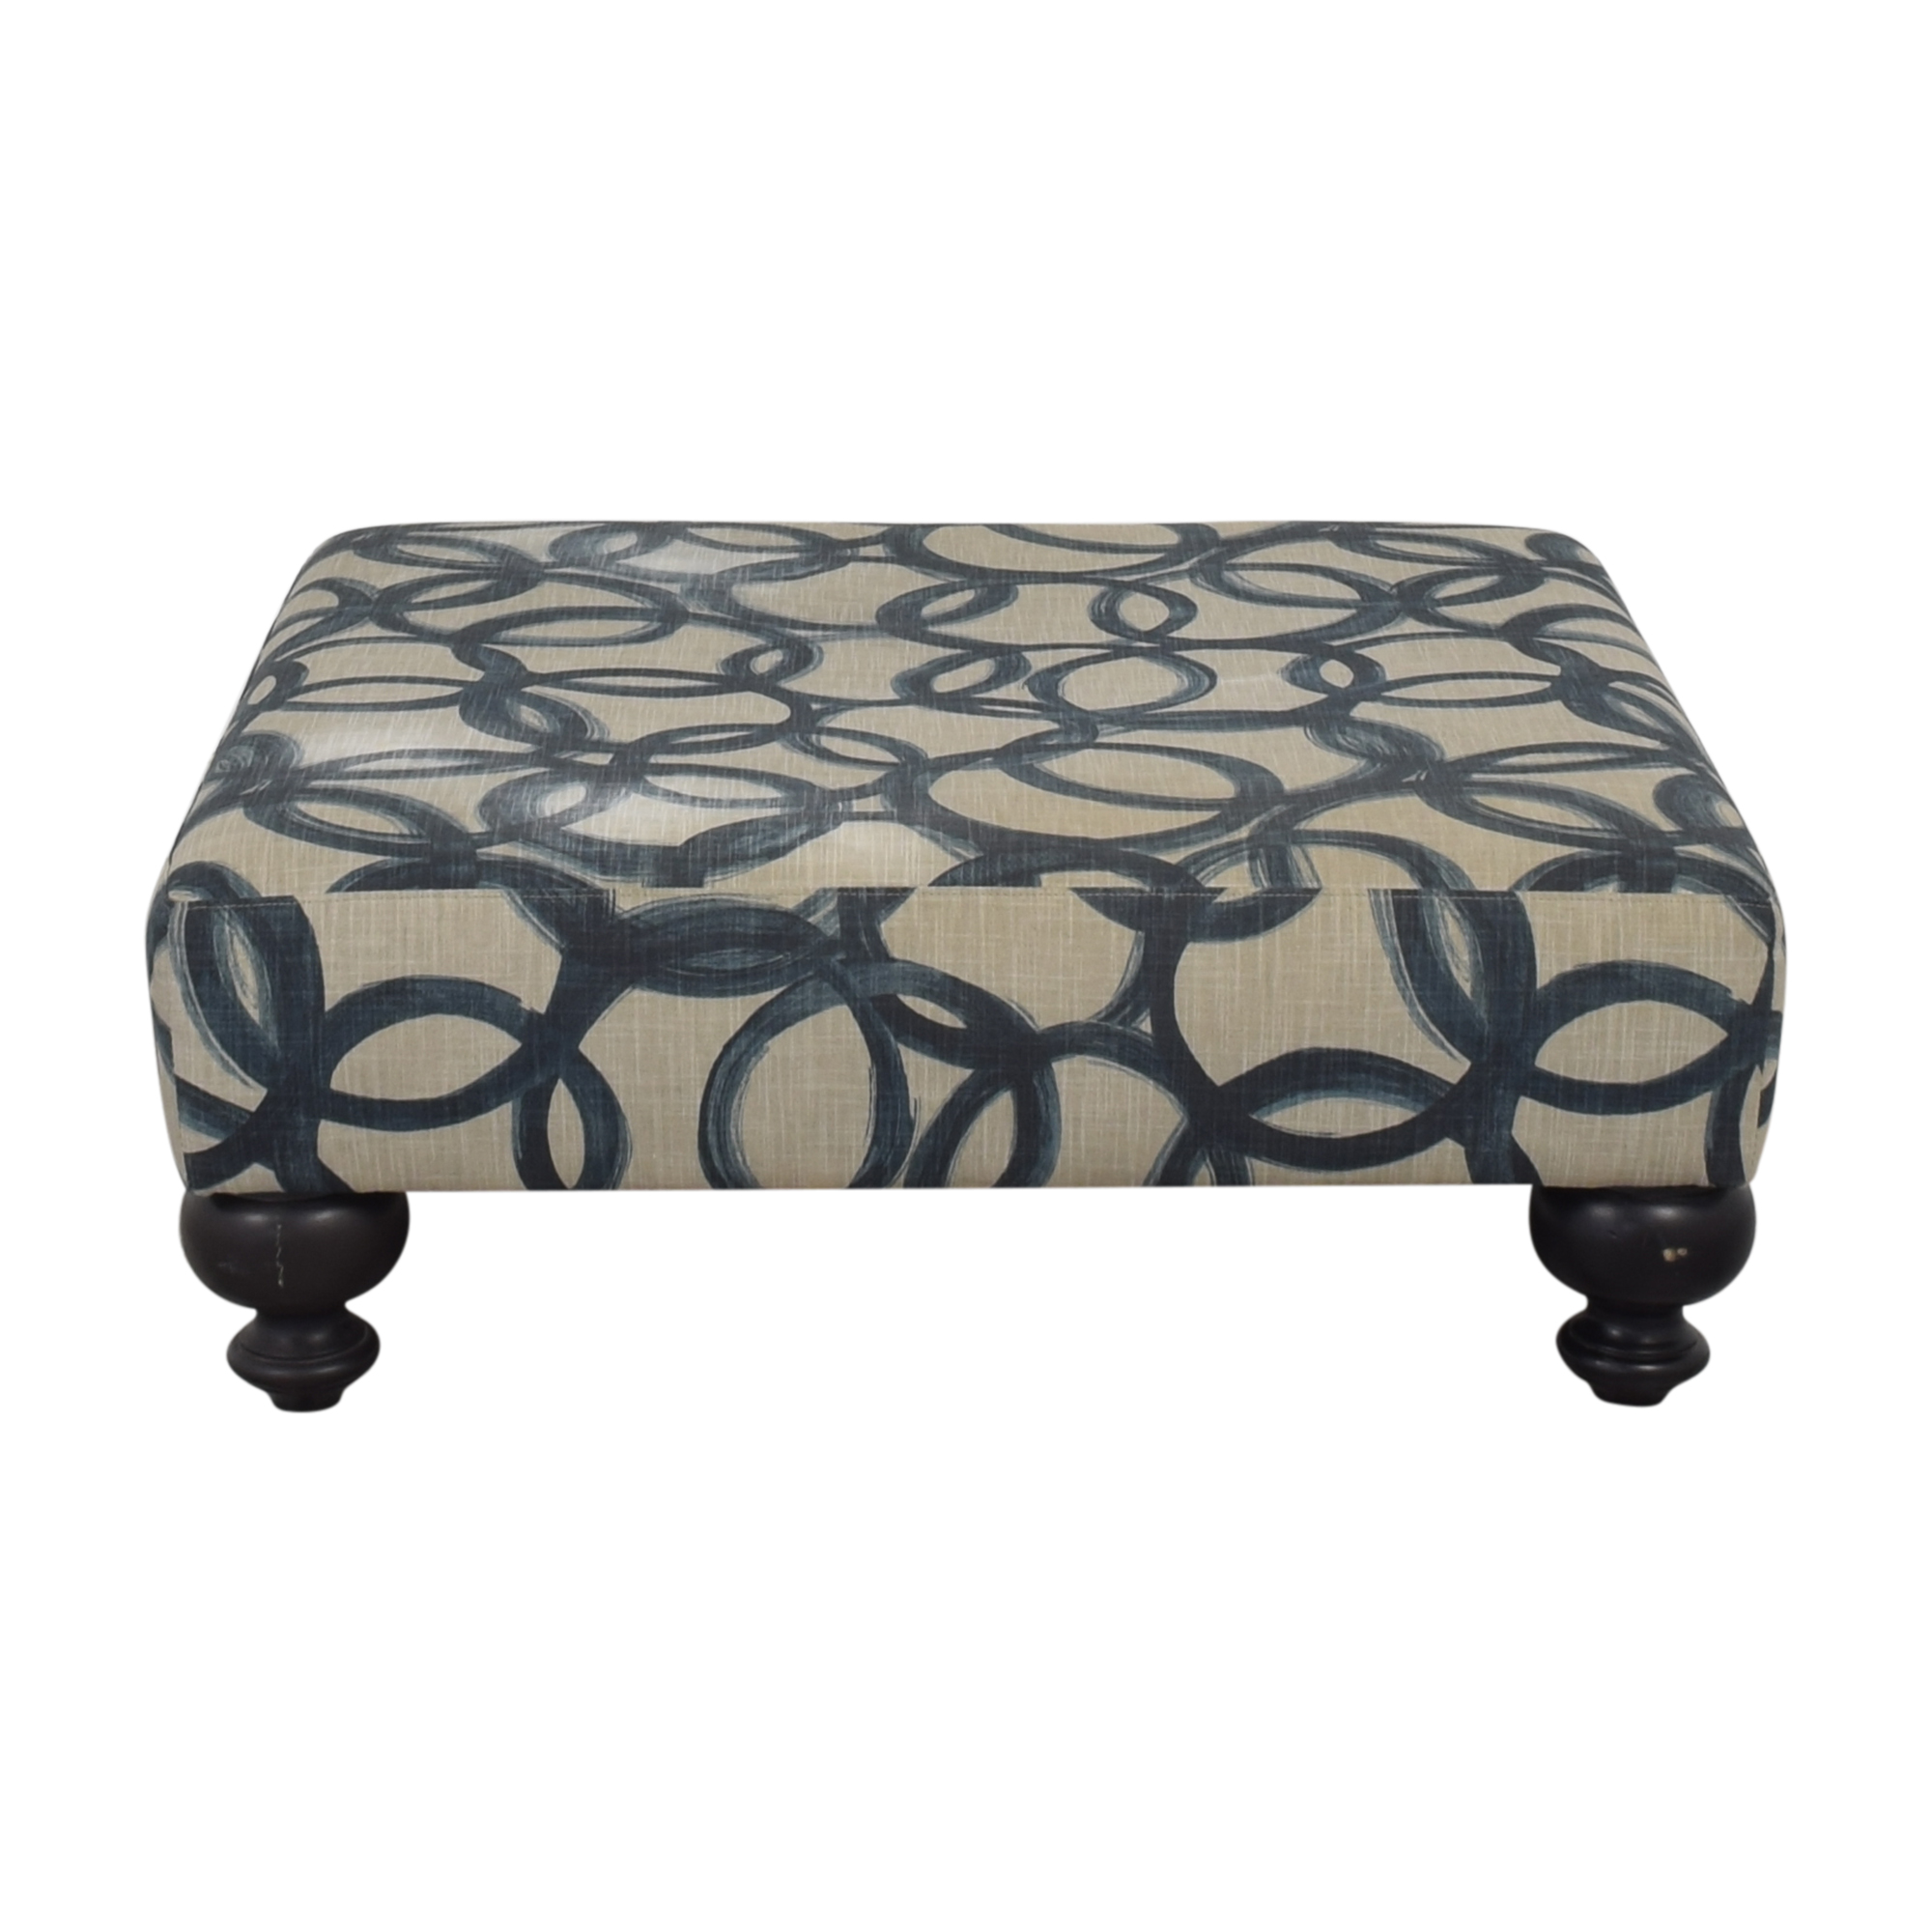 West Elm West Elm Essex Upholstered Ottoman used